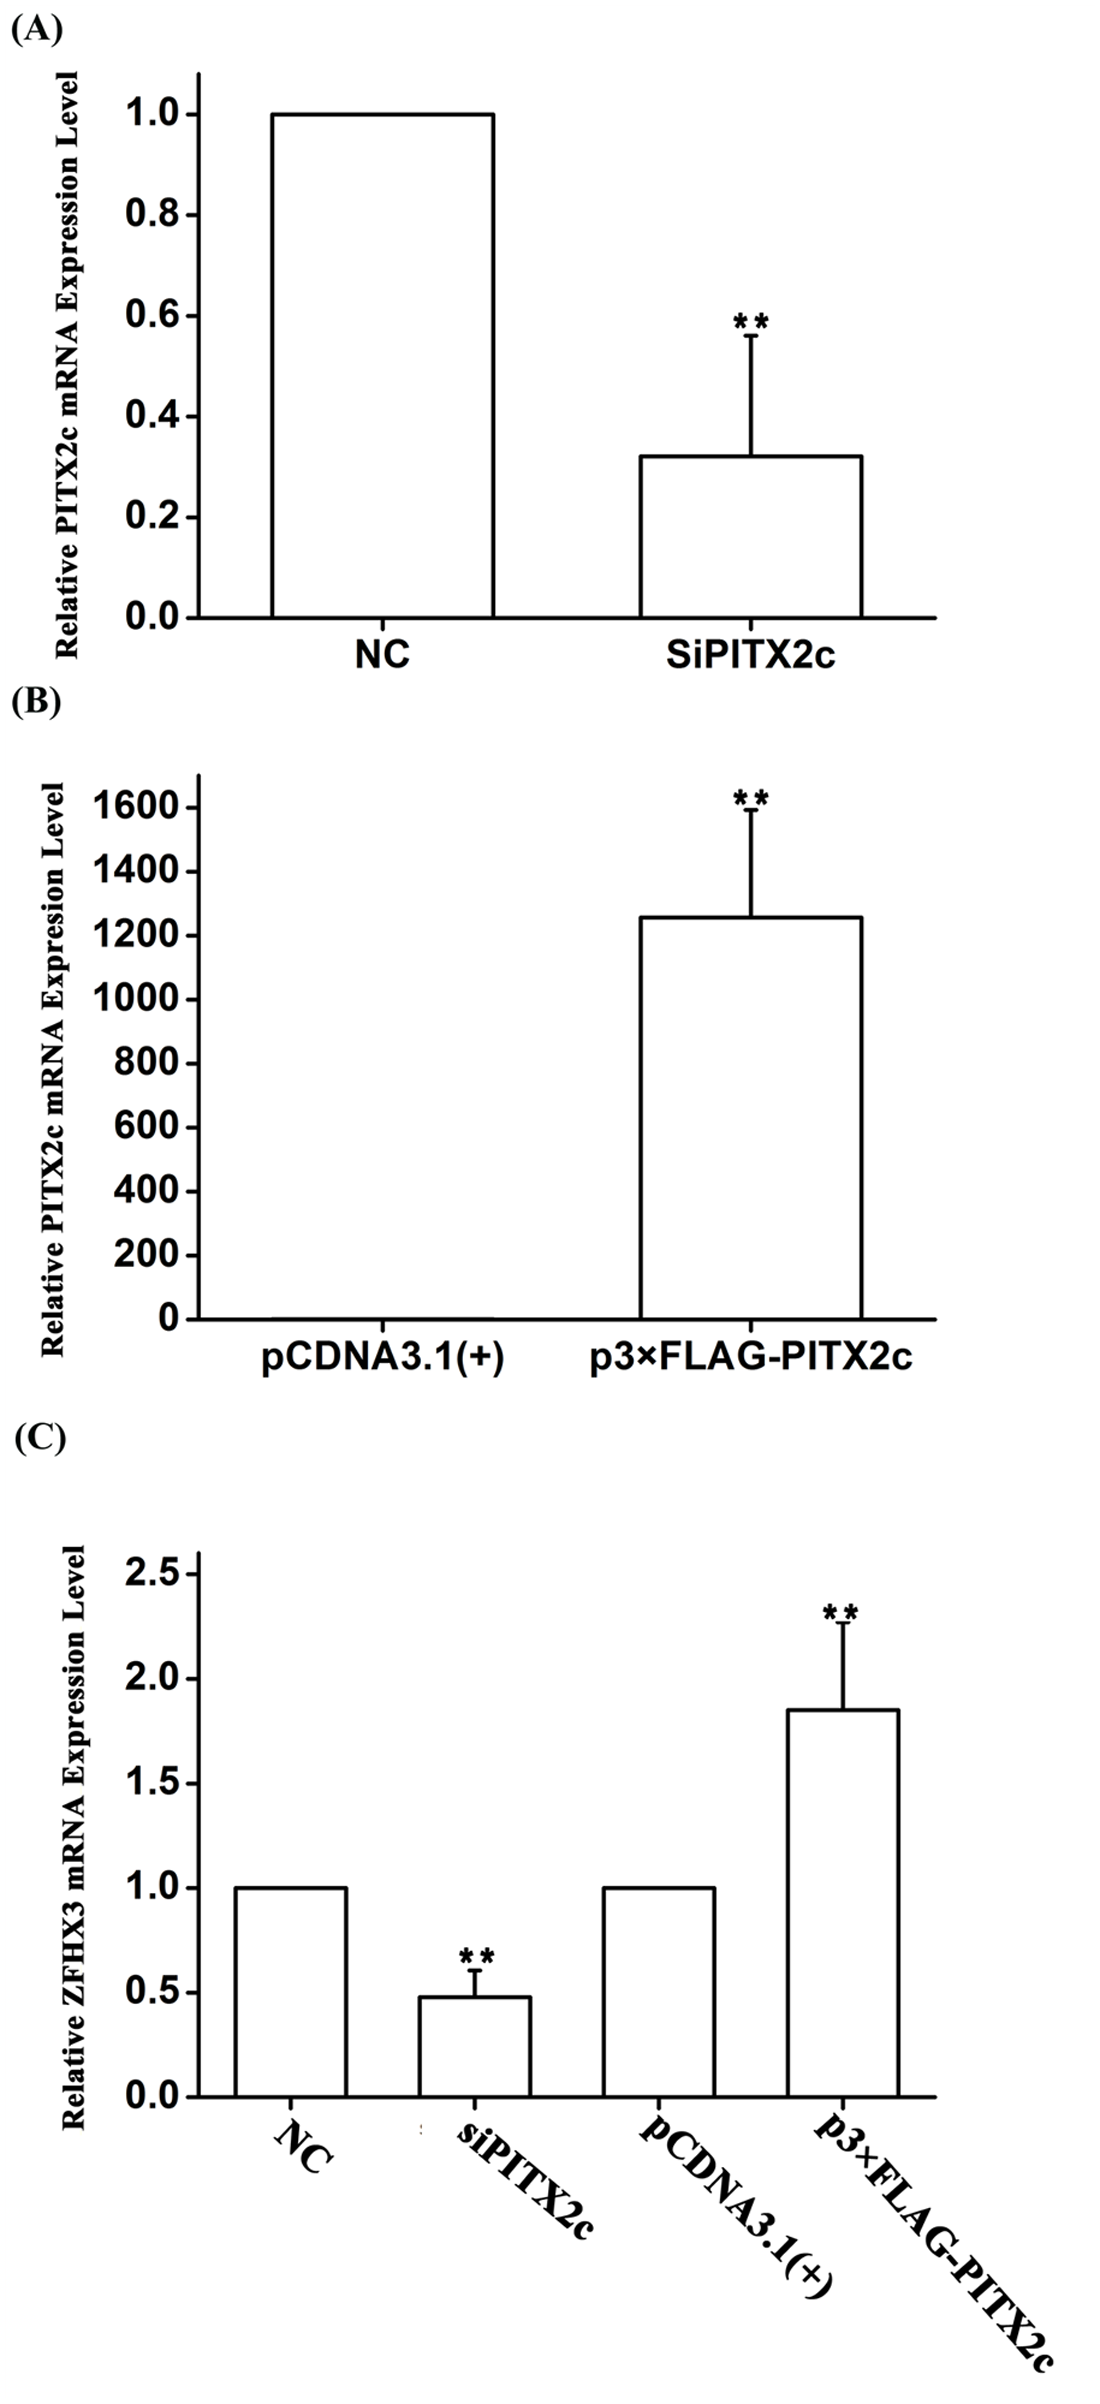 The <i>PITX2c</i> gene positively regulates expression of the <i>ZFHX3</i> gene. HCT116 cells were transfected with siRNA specific for <i>PITX2c</i> or an expression plasmid for <i>PITX2c</i> and used for isolation of total RNA samples and real time RT-PCR analysis.